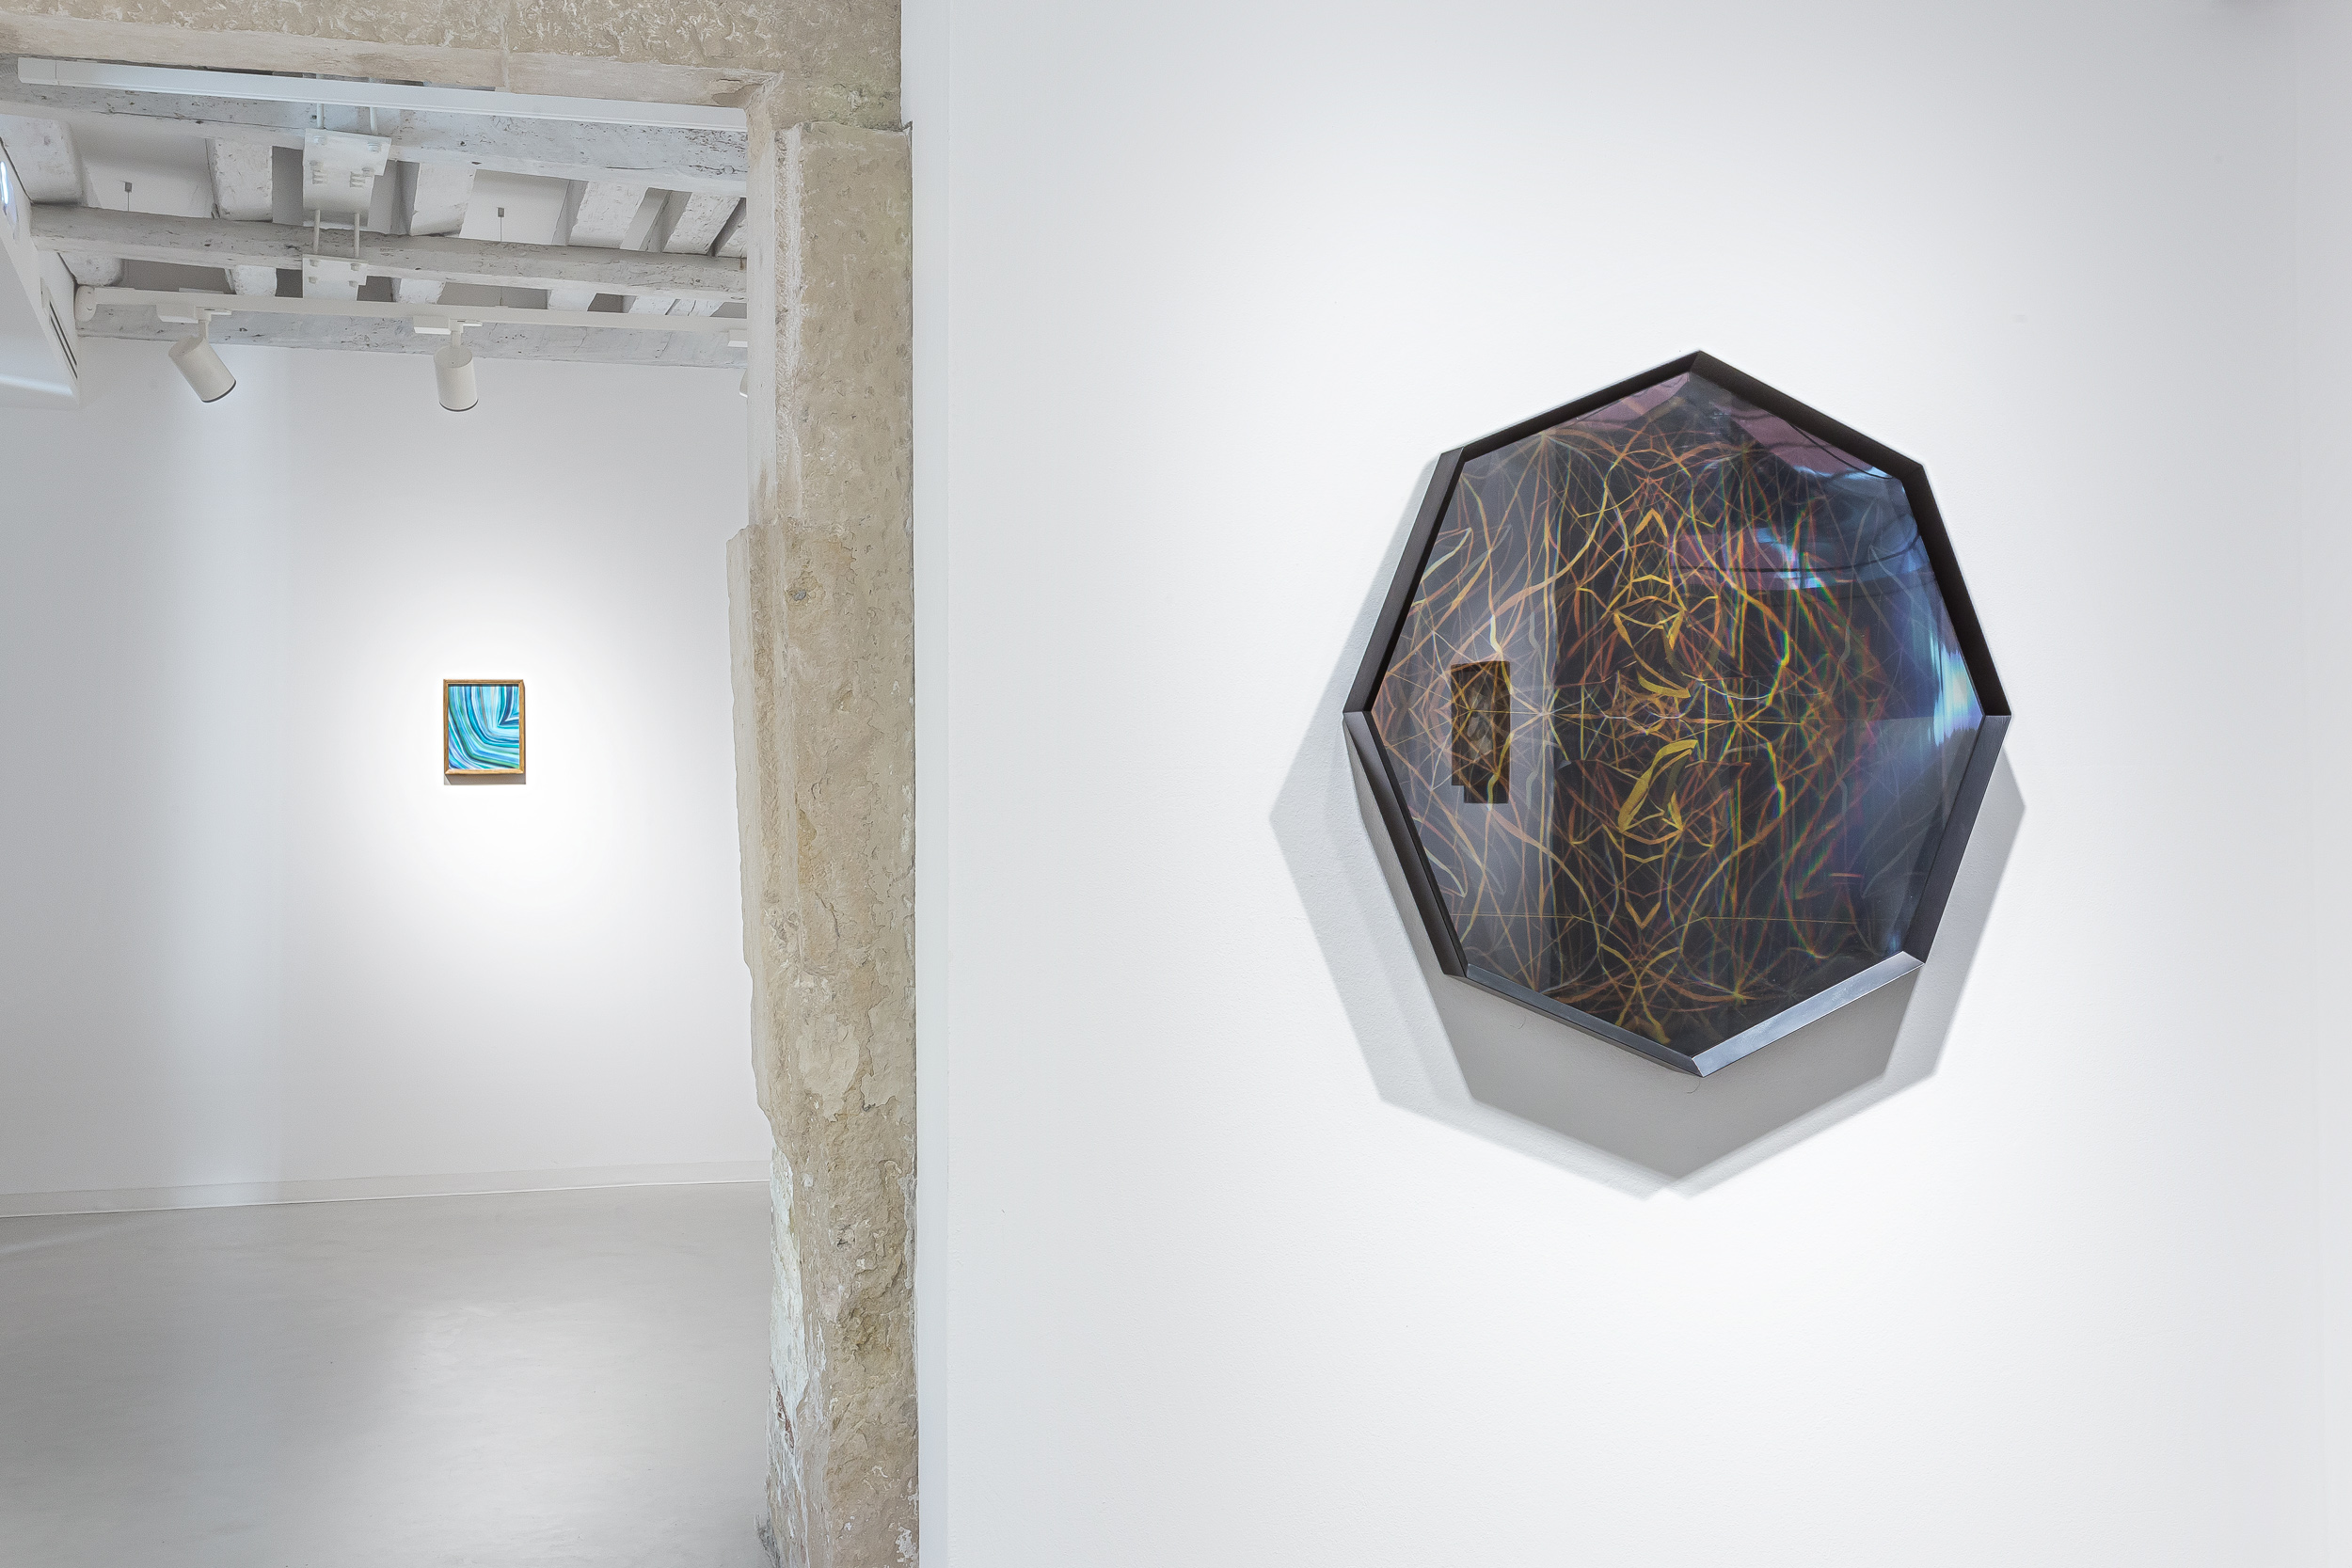 Installation view of Invisible-no, Maurizio Donezlli, Eccetera Drawing, 2016, acrylic, Mirror octagonal, 2016, mix media in box